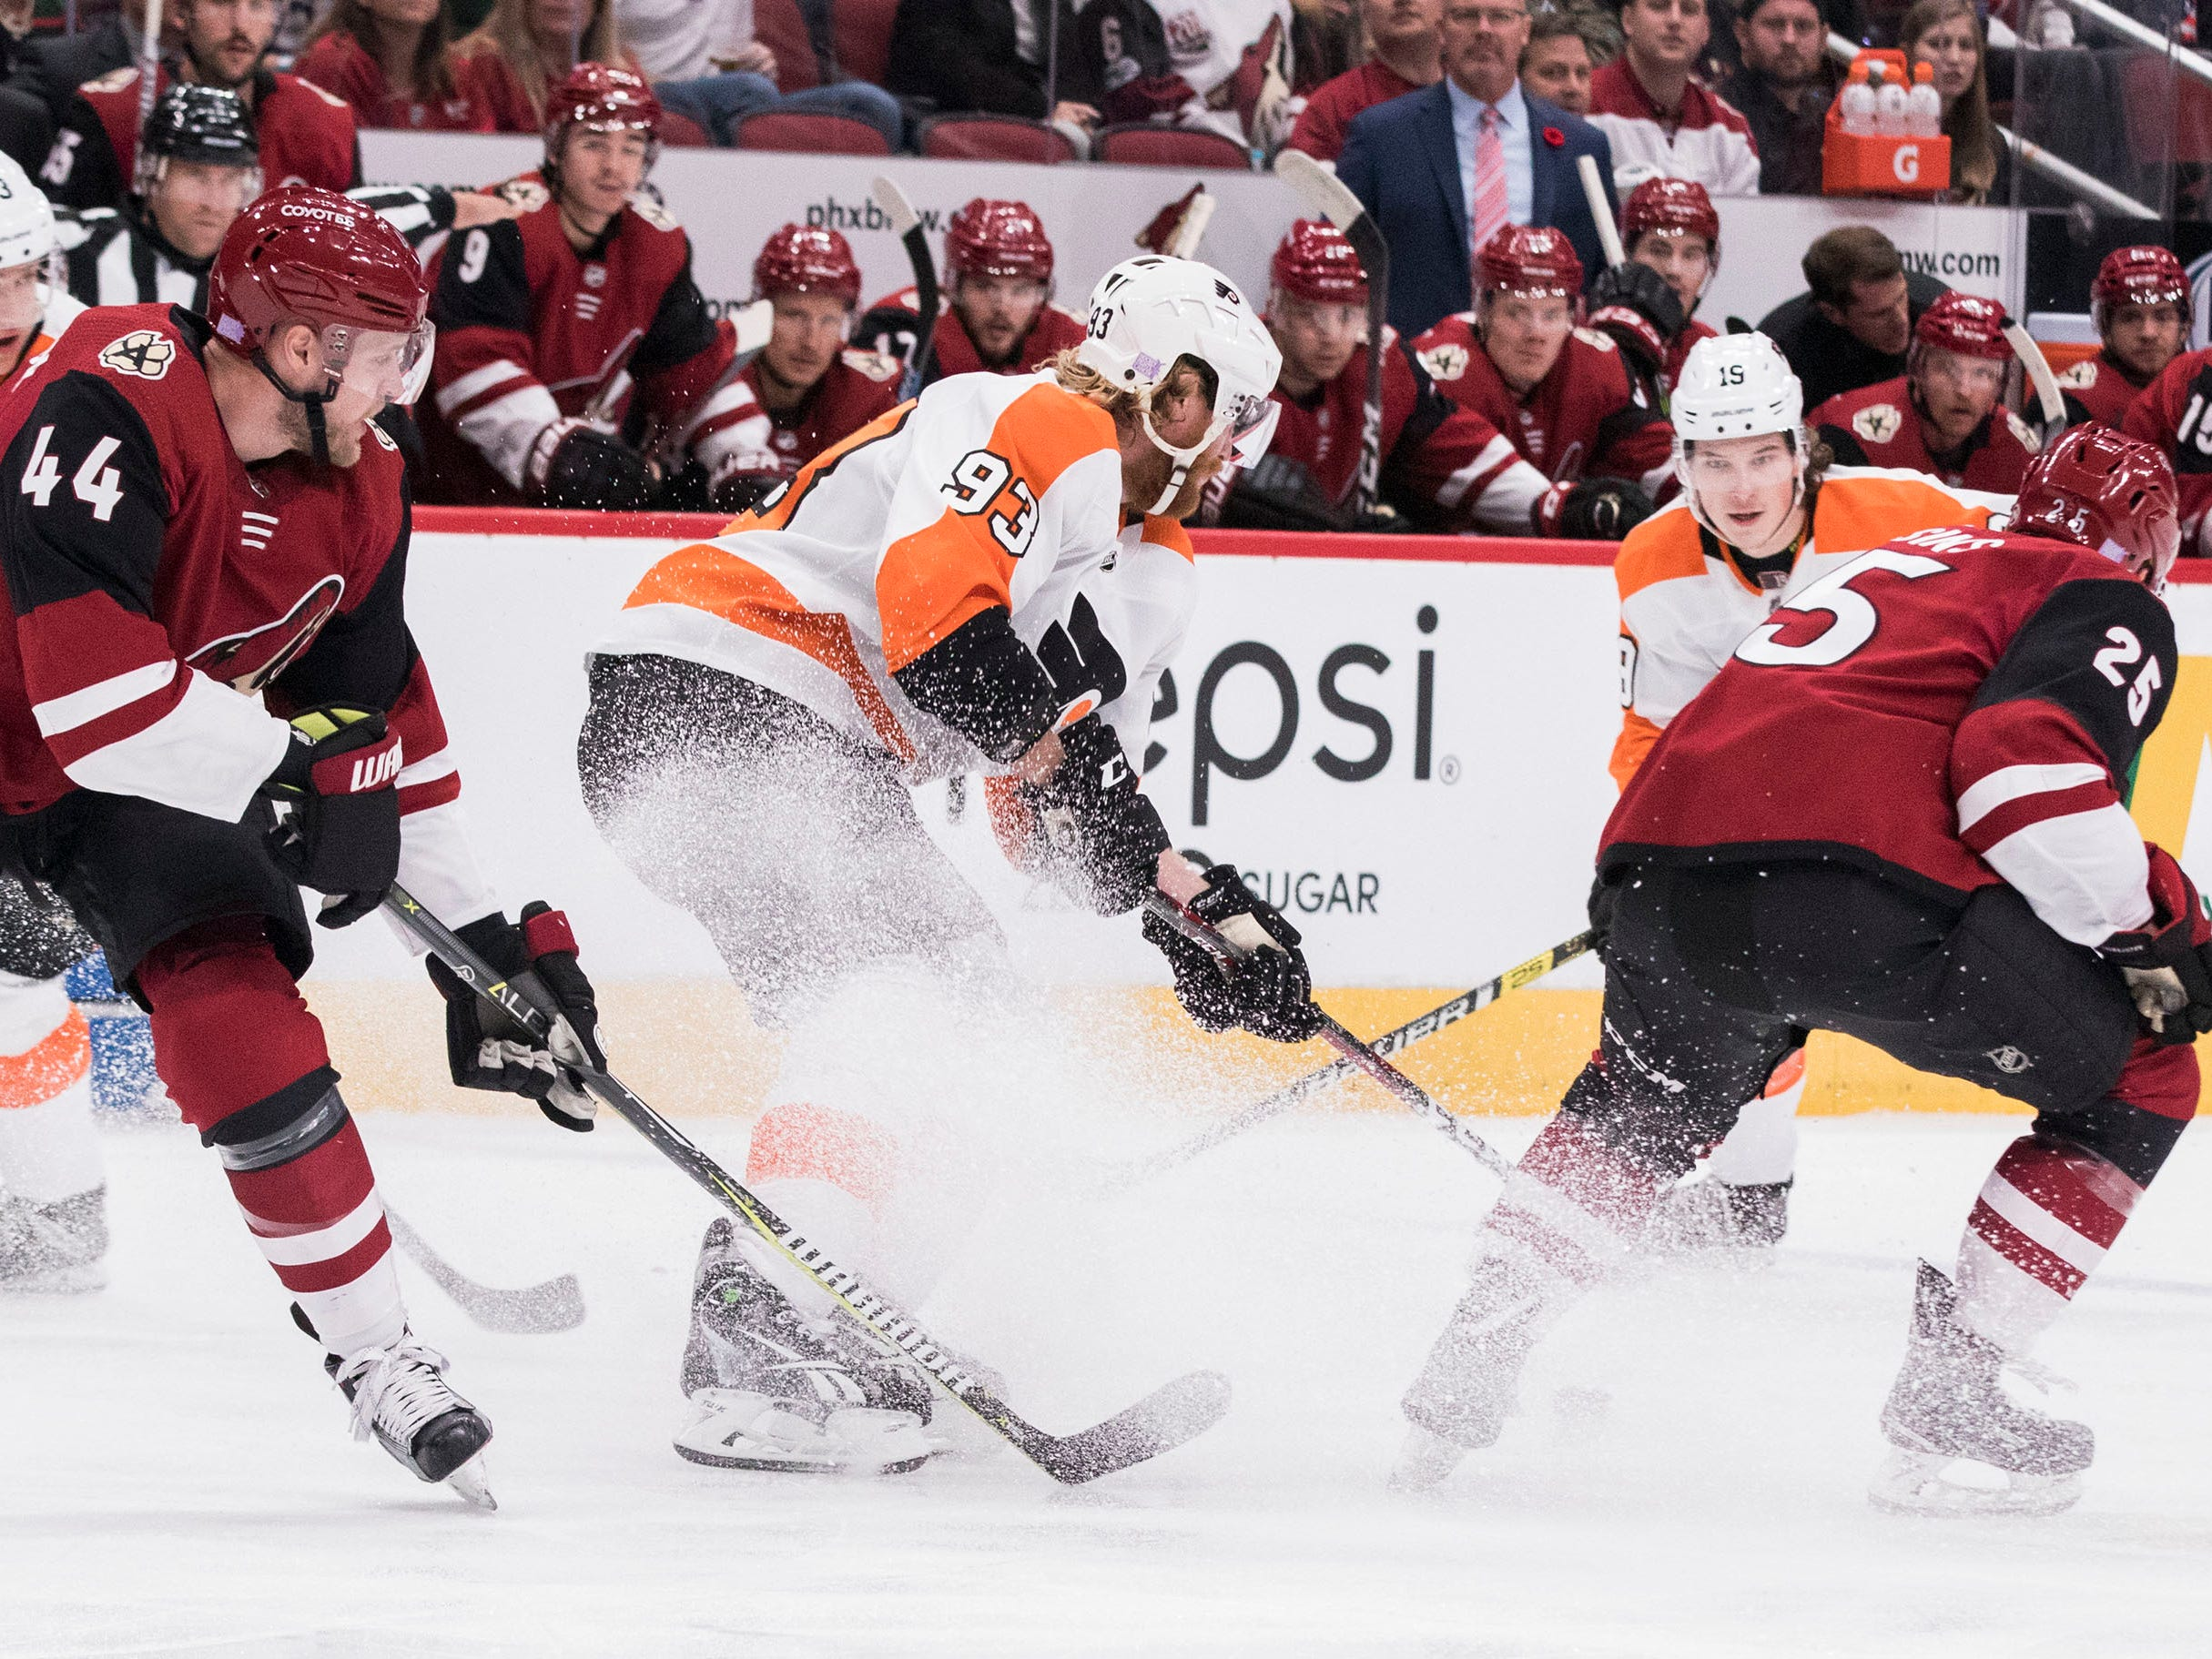 Philadelphia Flyers' Jakub Voracek (93) controls the puck as he's double-teamed by the Arizona Coyotes' Kevin Connauton (44) and Nick Cousins (25)during the first period of an NHL hockey game Monday, Nov. 5, 2018, in Glendale, Ariz. (AP Photo/Darryl Webb)